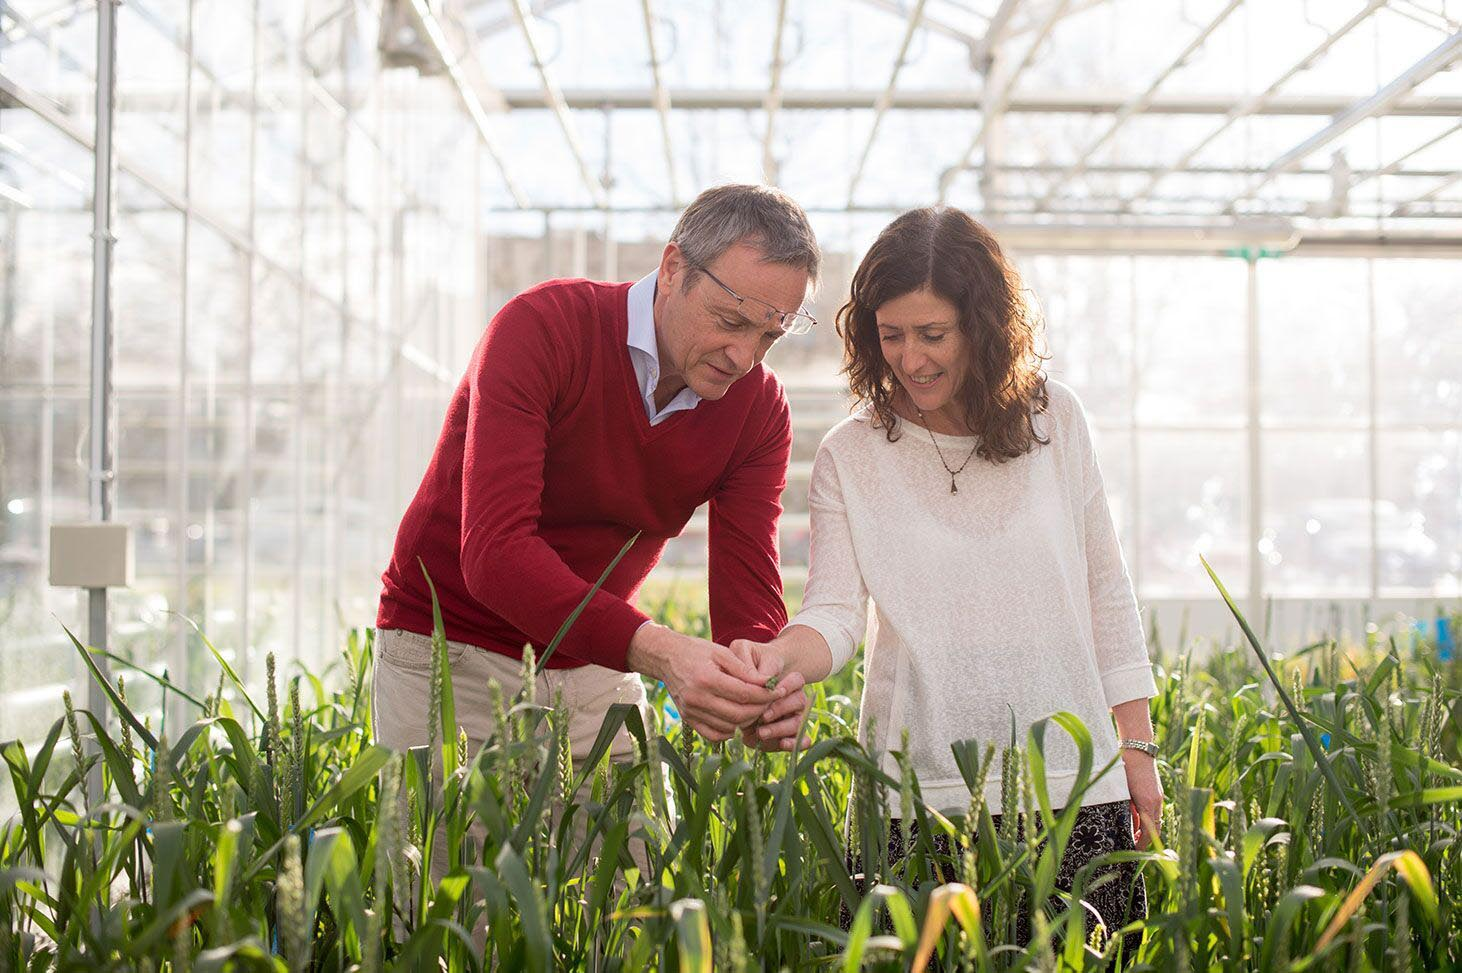 Ian and Julie King at the Wheat Research Centre, Nottingham University.